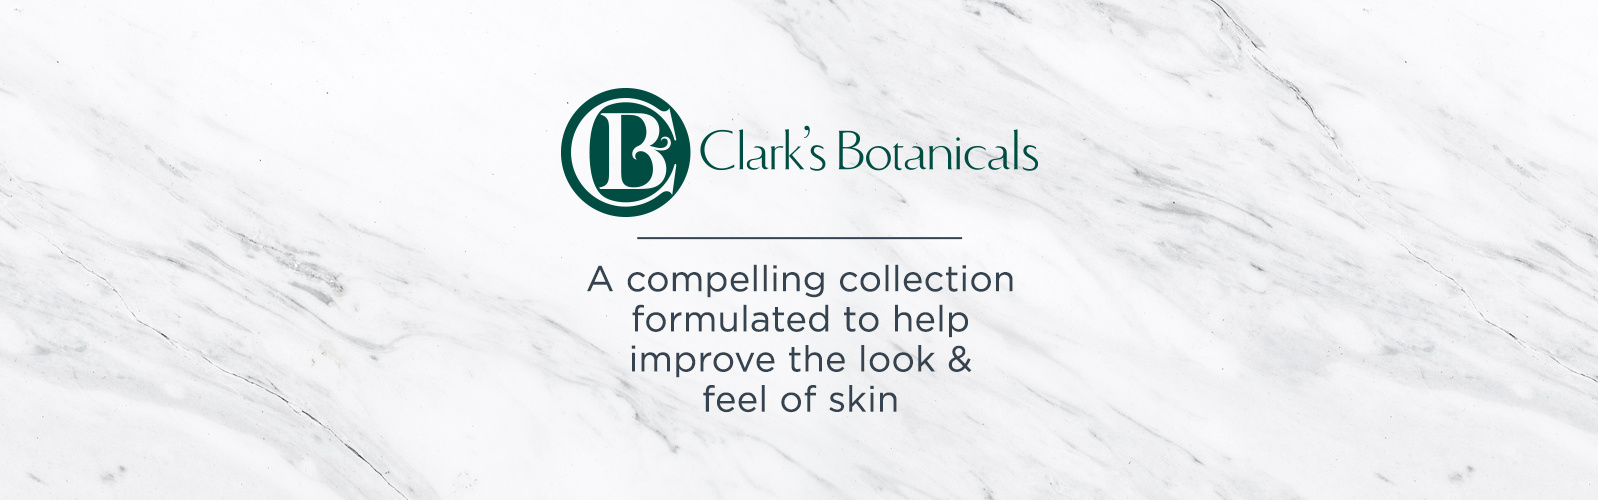 Clark's Botanicals. A compelling collection formulated to help improve the look & feel of skin